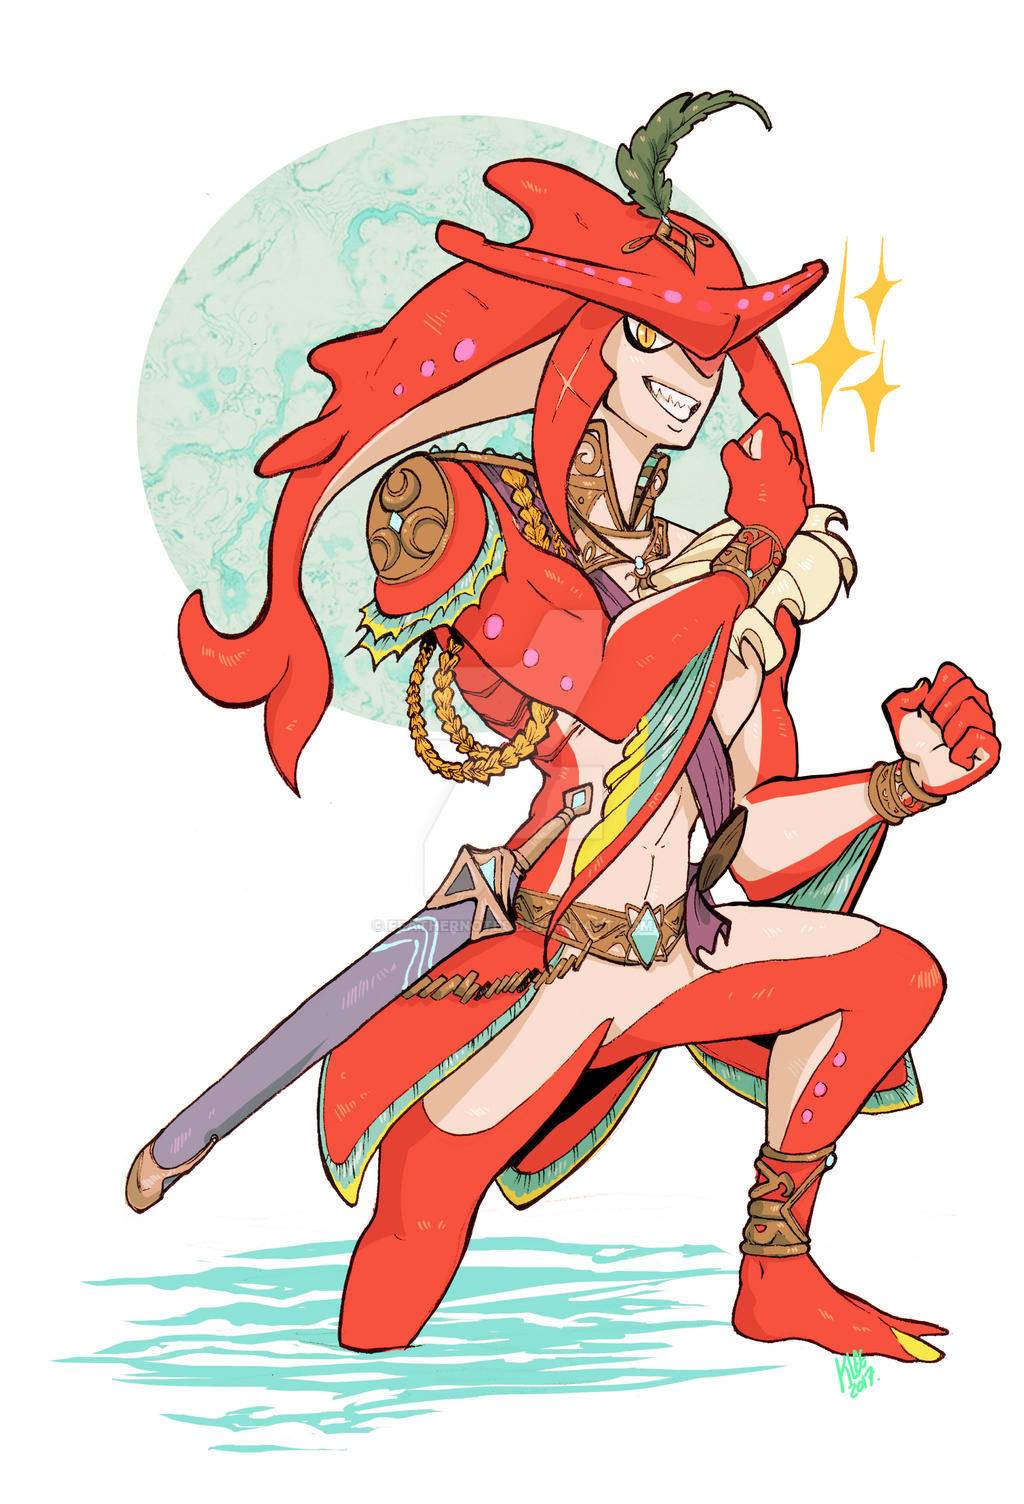 Sidon Botw By Feathernotes Watch Fan Art Digital Drawings Games